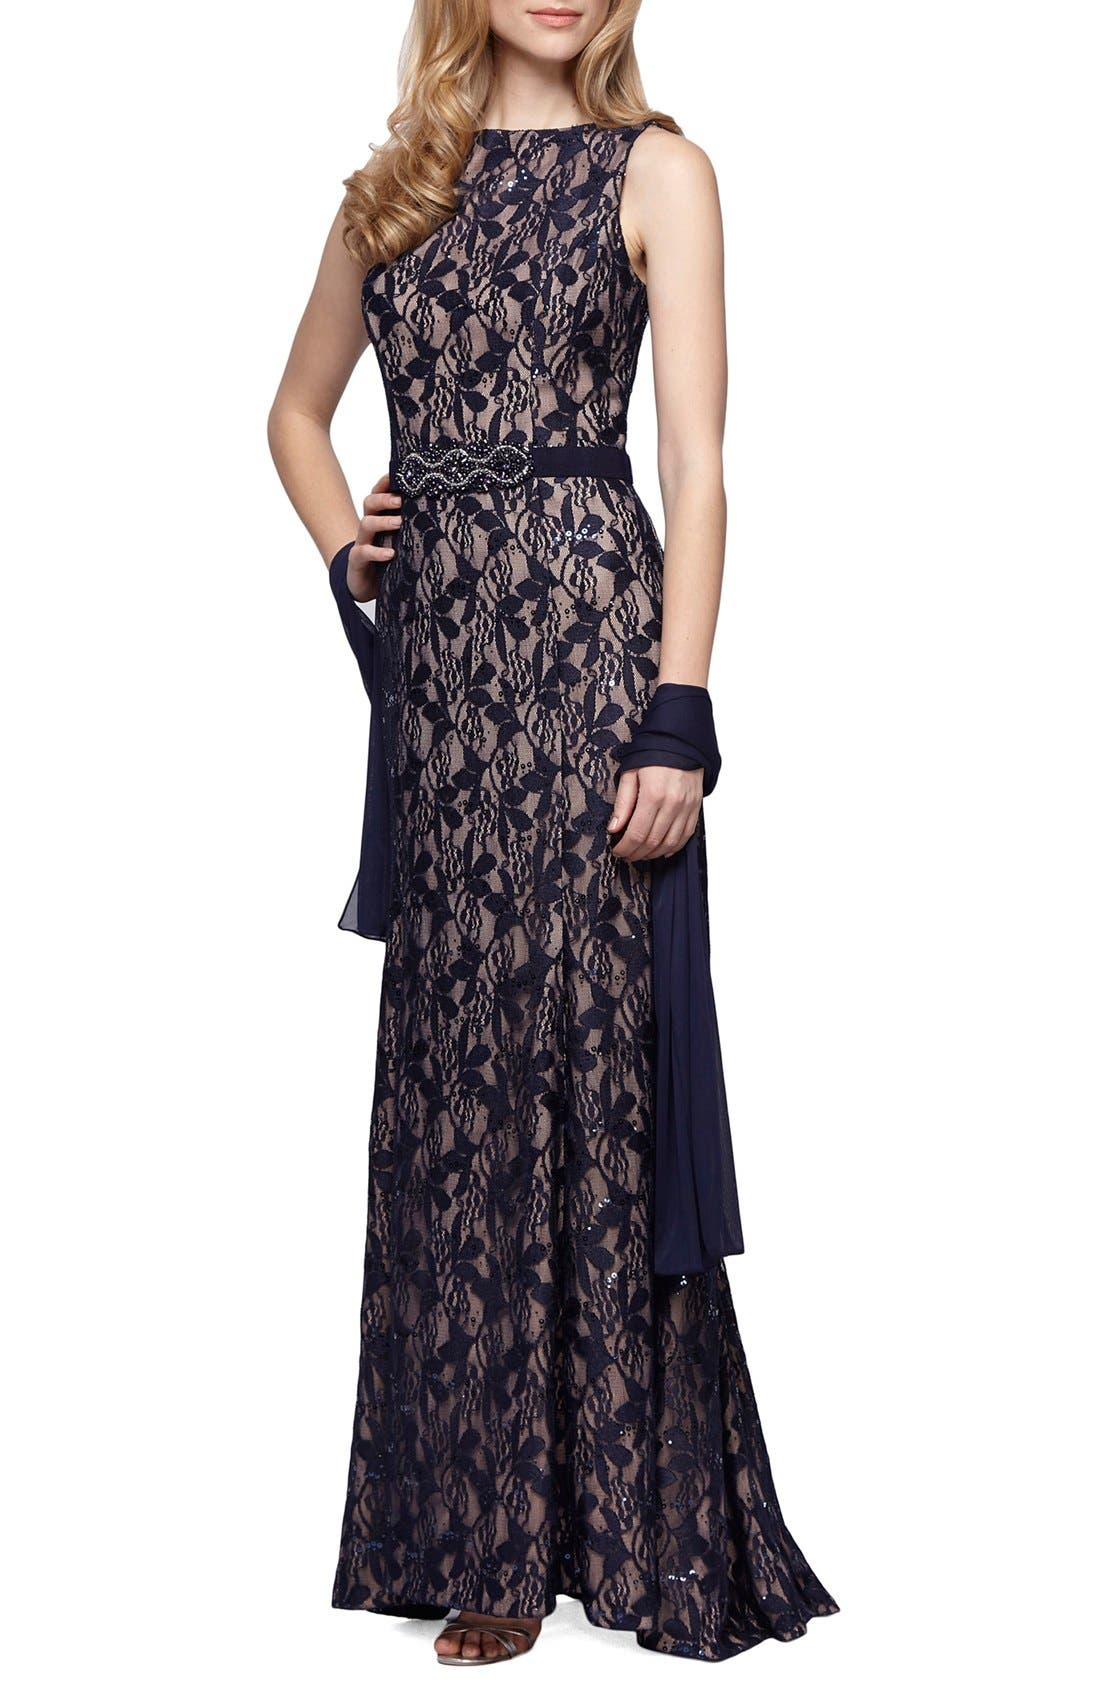 Alternate Image 1 Selected - Alex Evenings Embellished Lace Gown & Shawl (Regular & Petite)